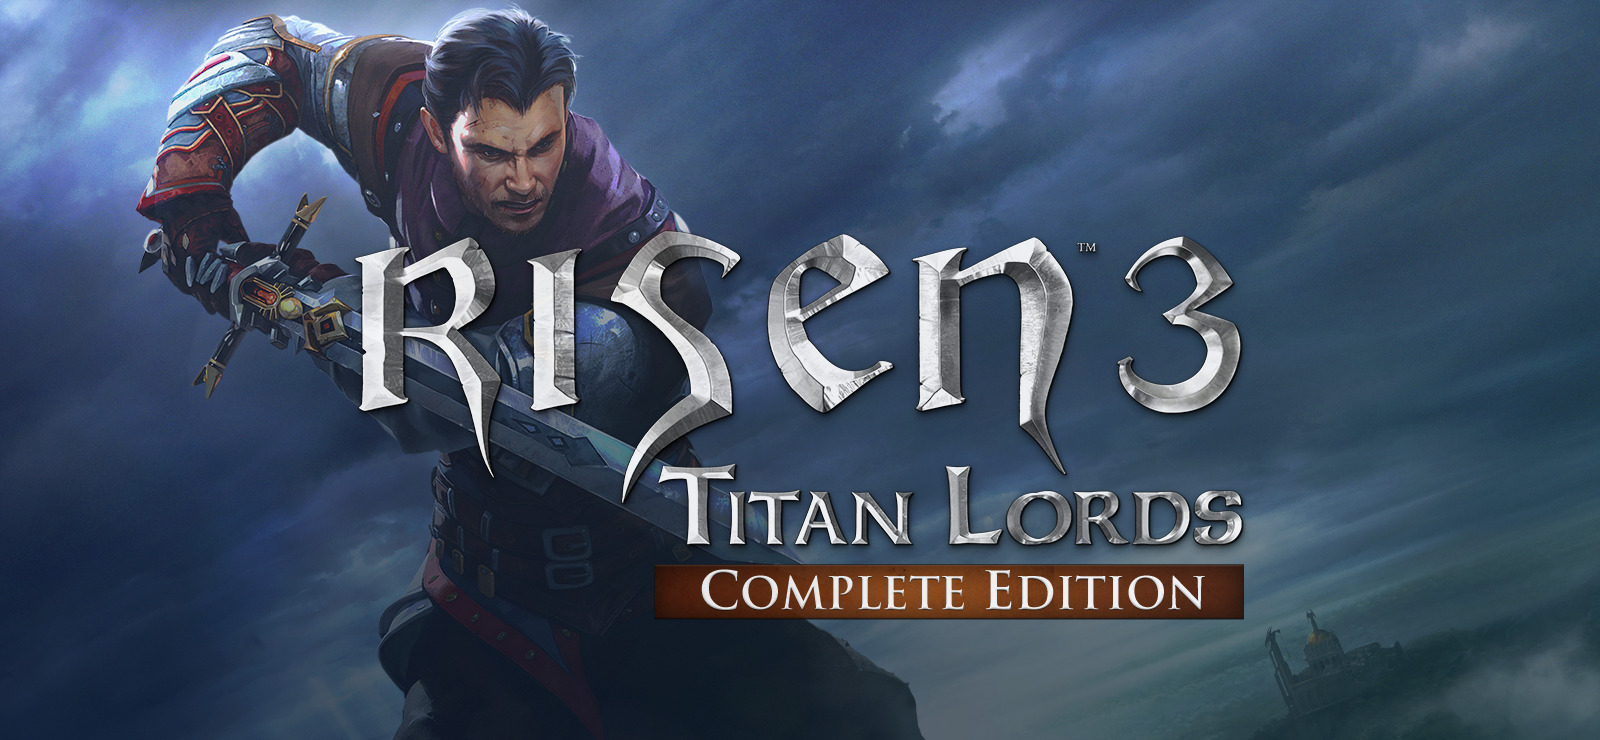 Risen 3 Complete Edition (Steam Key)✅ +GIFTS + DISCOUNT